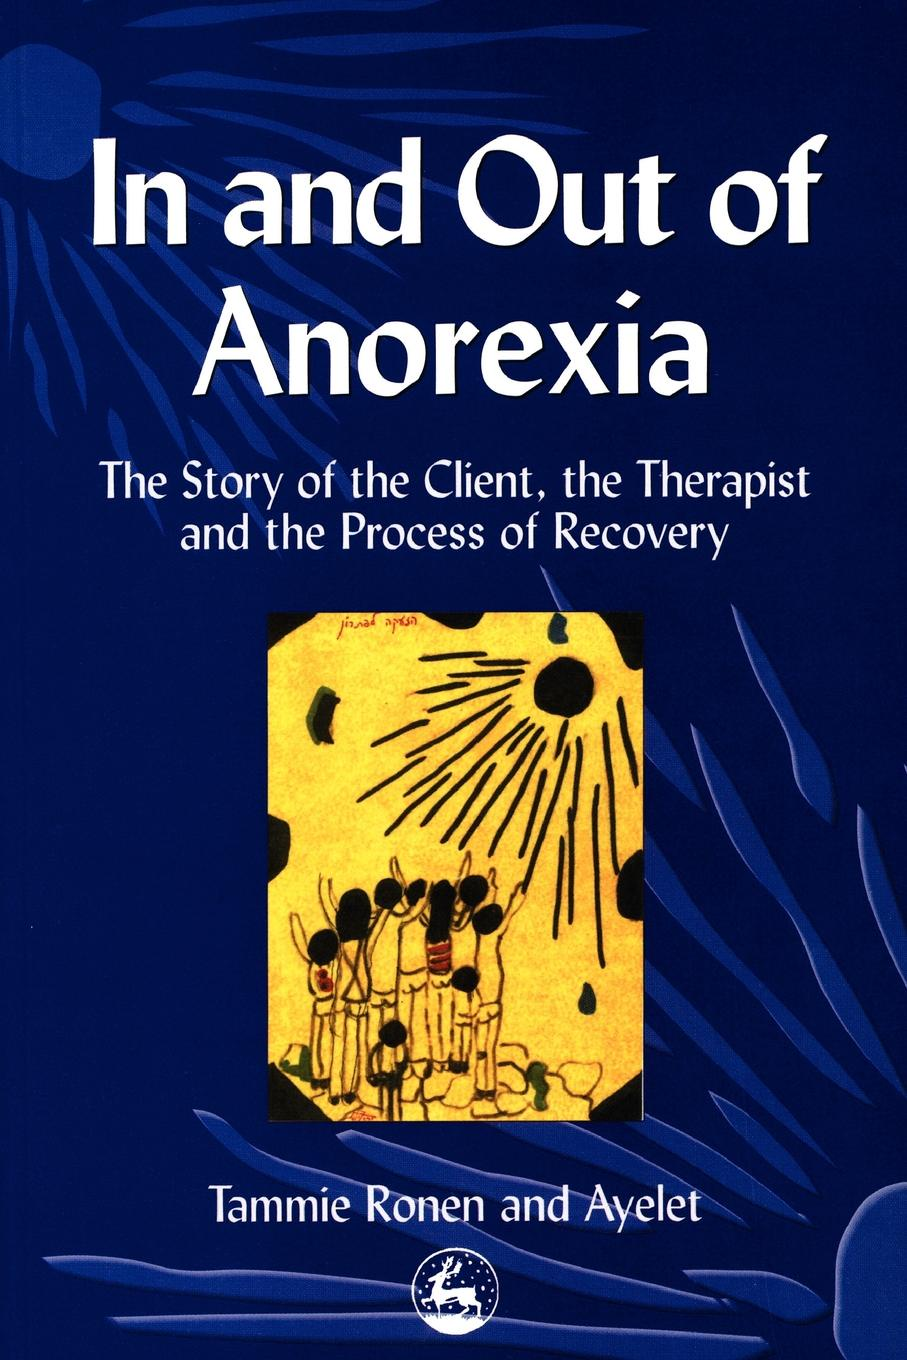 Tammie Ronen, Ayelet In and Out of Anorexia. The Story of the Client, the Therapist and the Process of Recovery alf h walle recovery the native way a therapist s manual pb